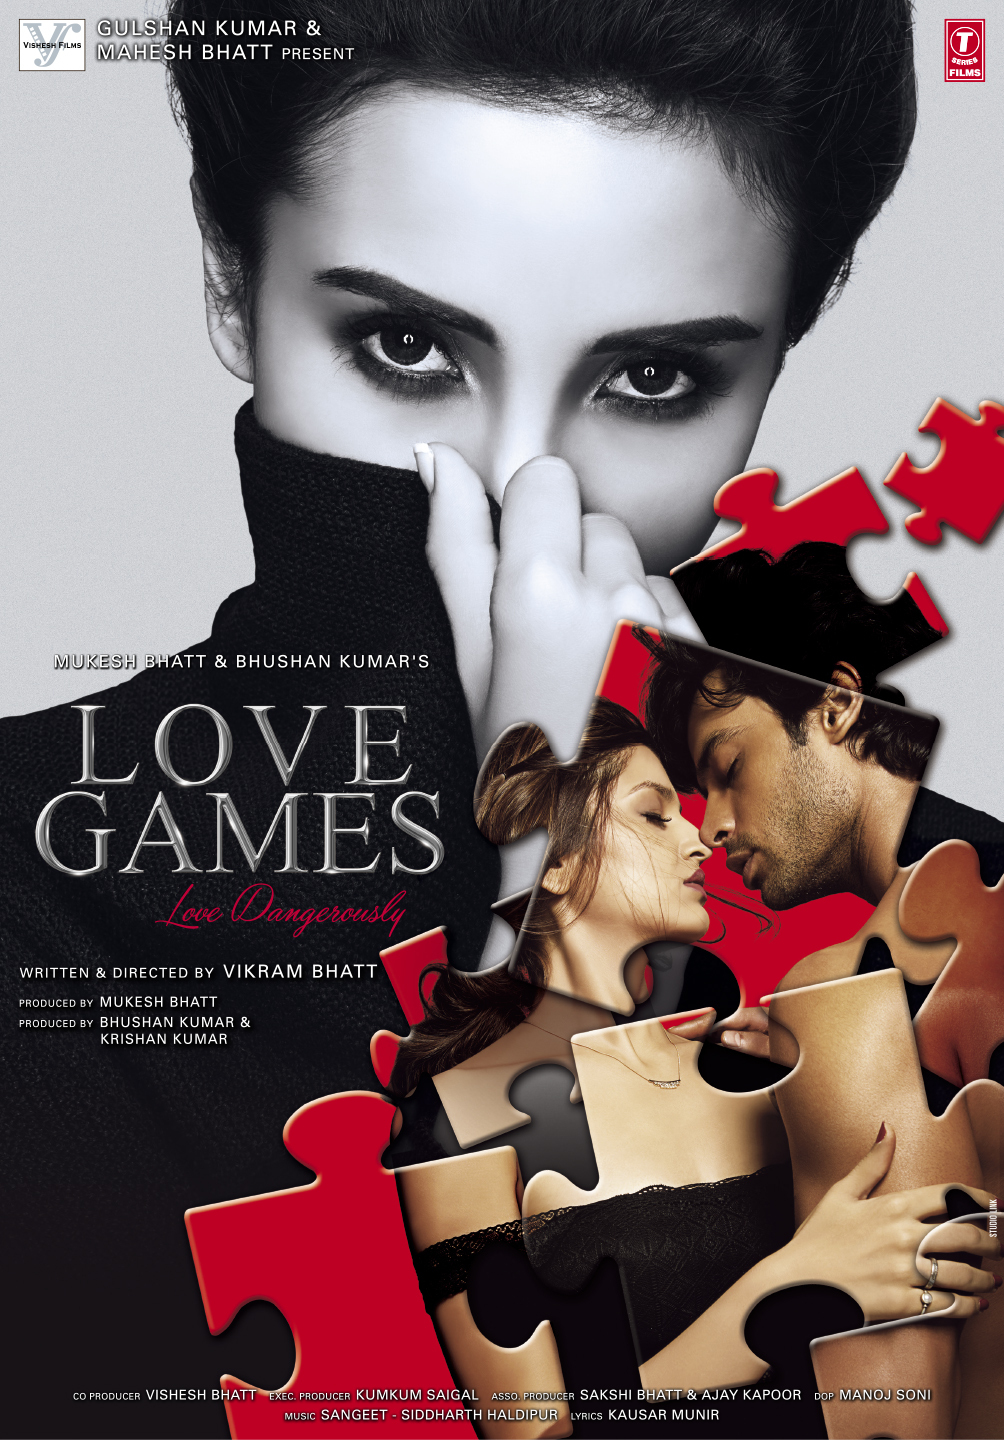 Love Games (2016) Movie Poster